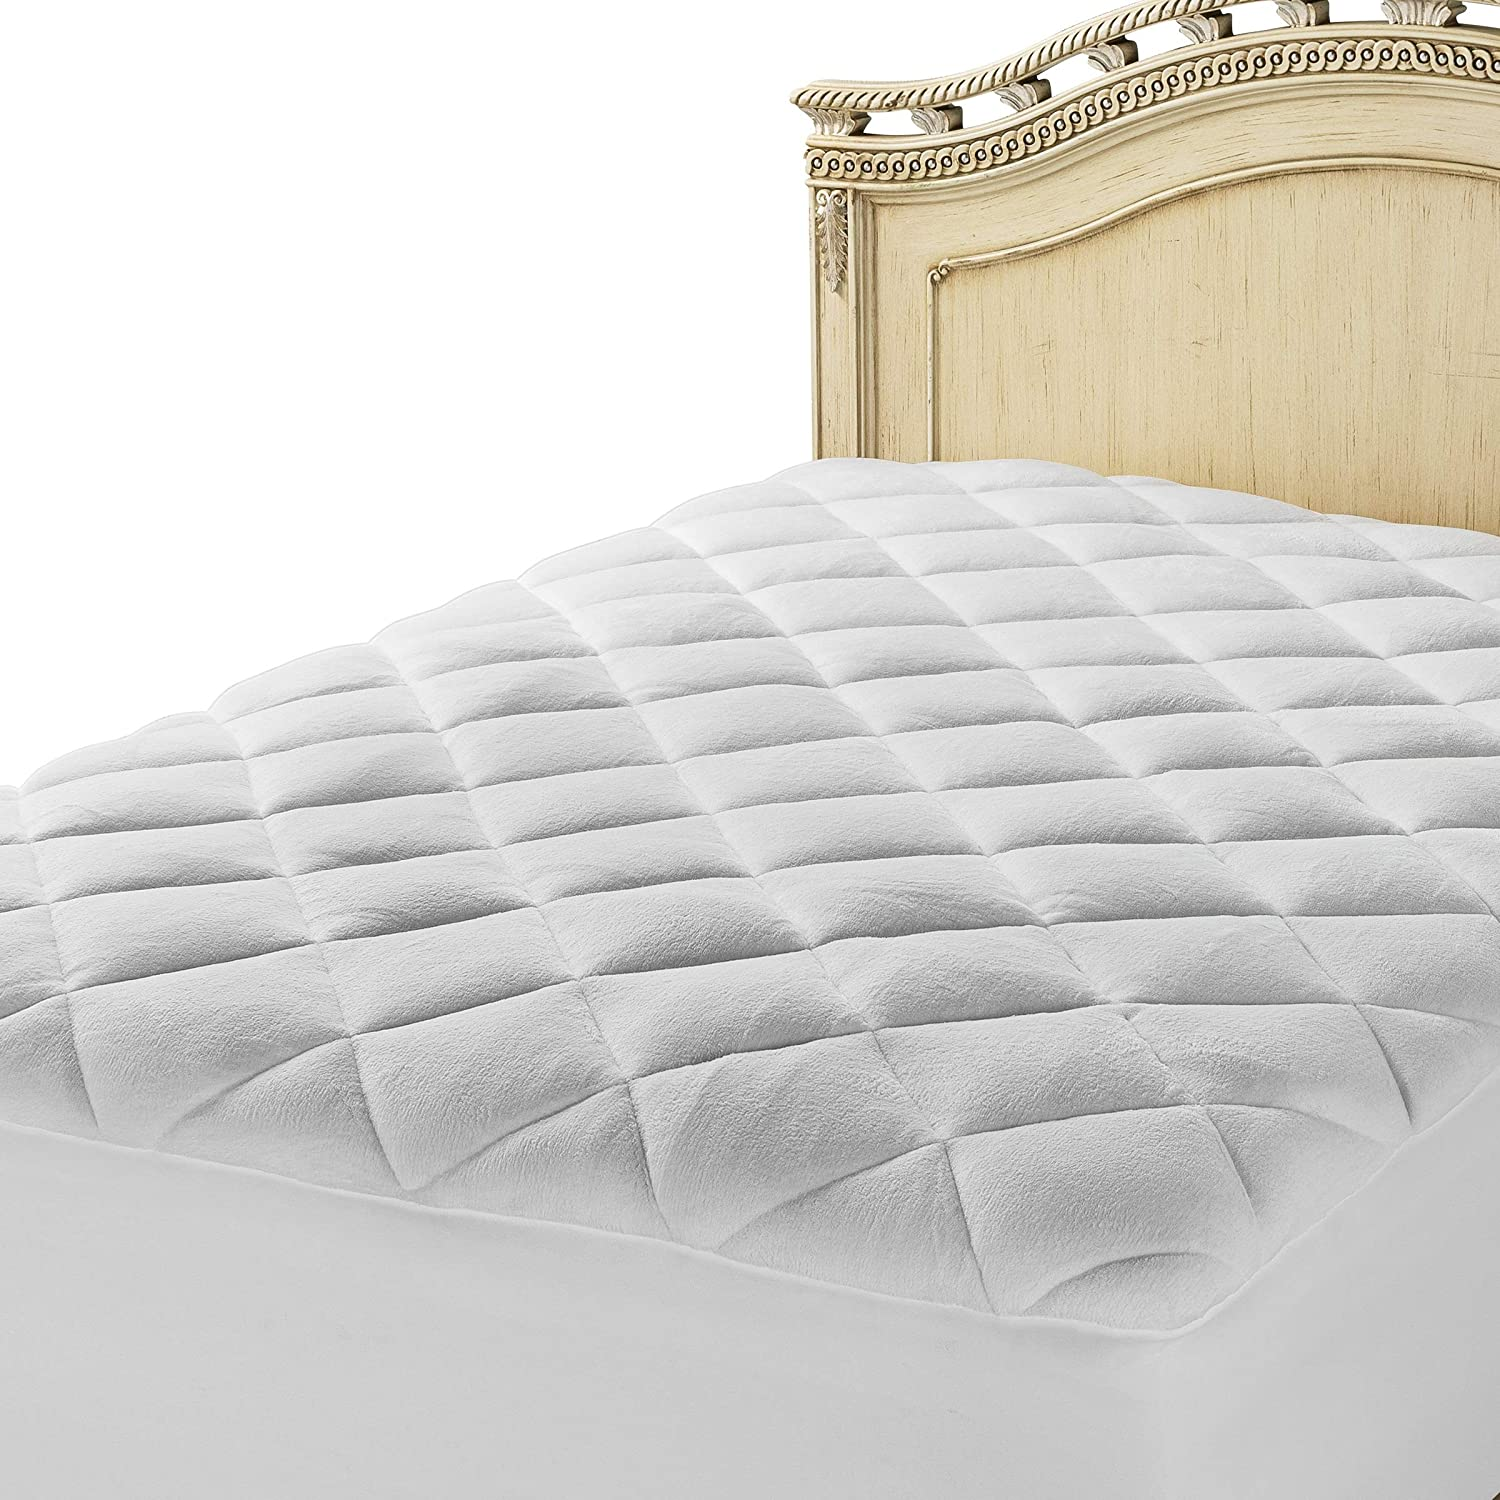 MASTERTEX Sleep Soft & Dream Sweet on Royal Comforts, New Double Puff Mattress Pad with Enriched, Extra-Plush Fiberfill, Topped with Pure, White Imported Fleece - Two Layers, Twin (39  x 75 )